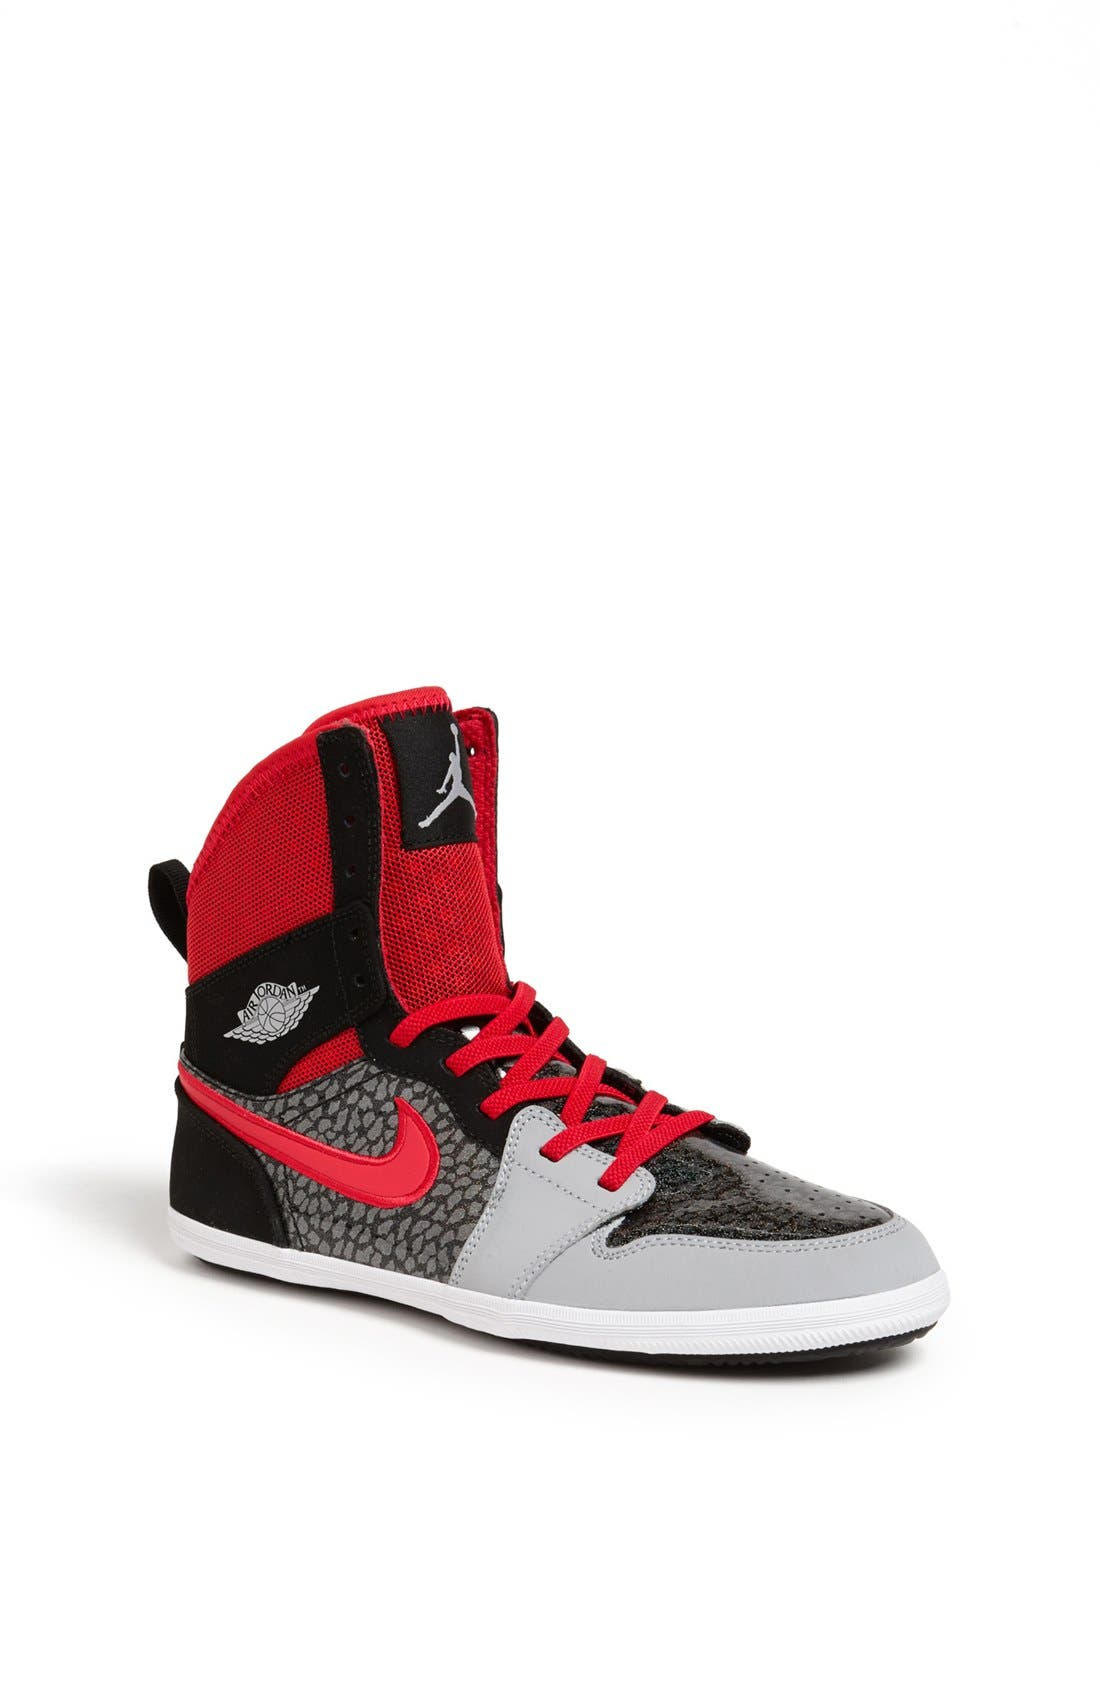 Alternate Image 1 Selected - Nike 'Jordan 1 Skinny High' Sneaker (Big Kid)